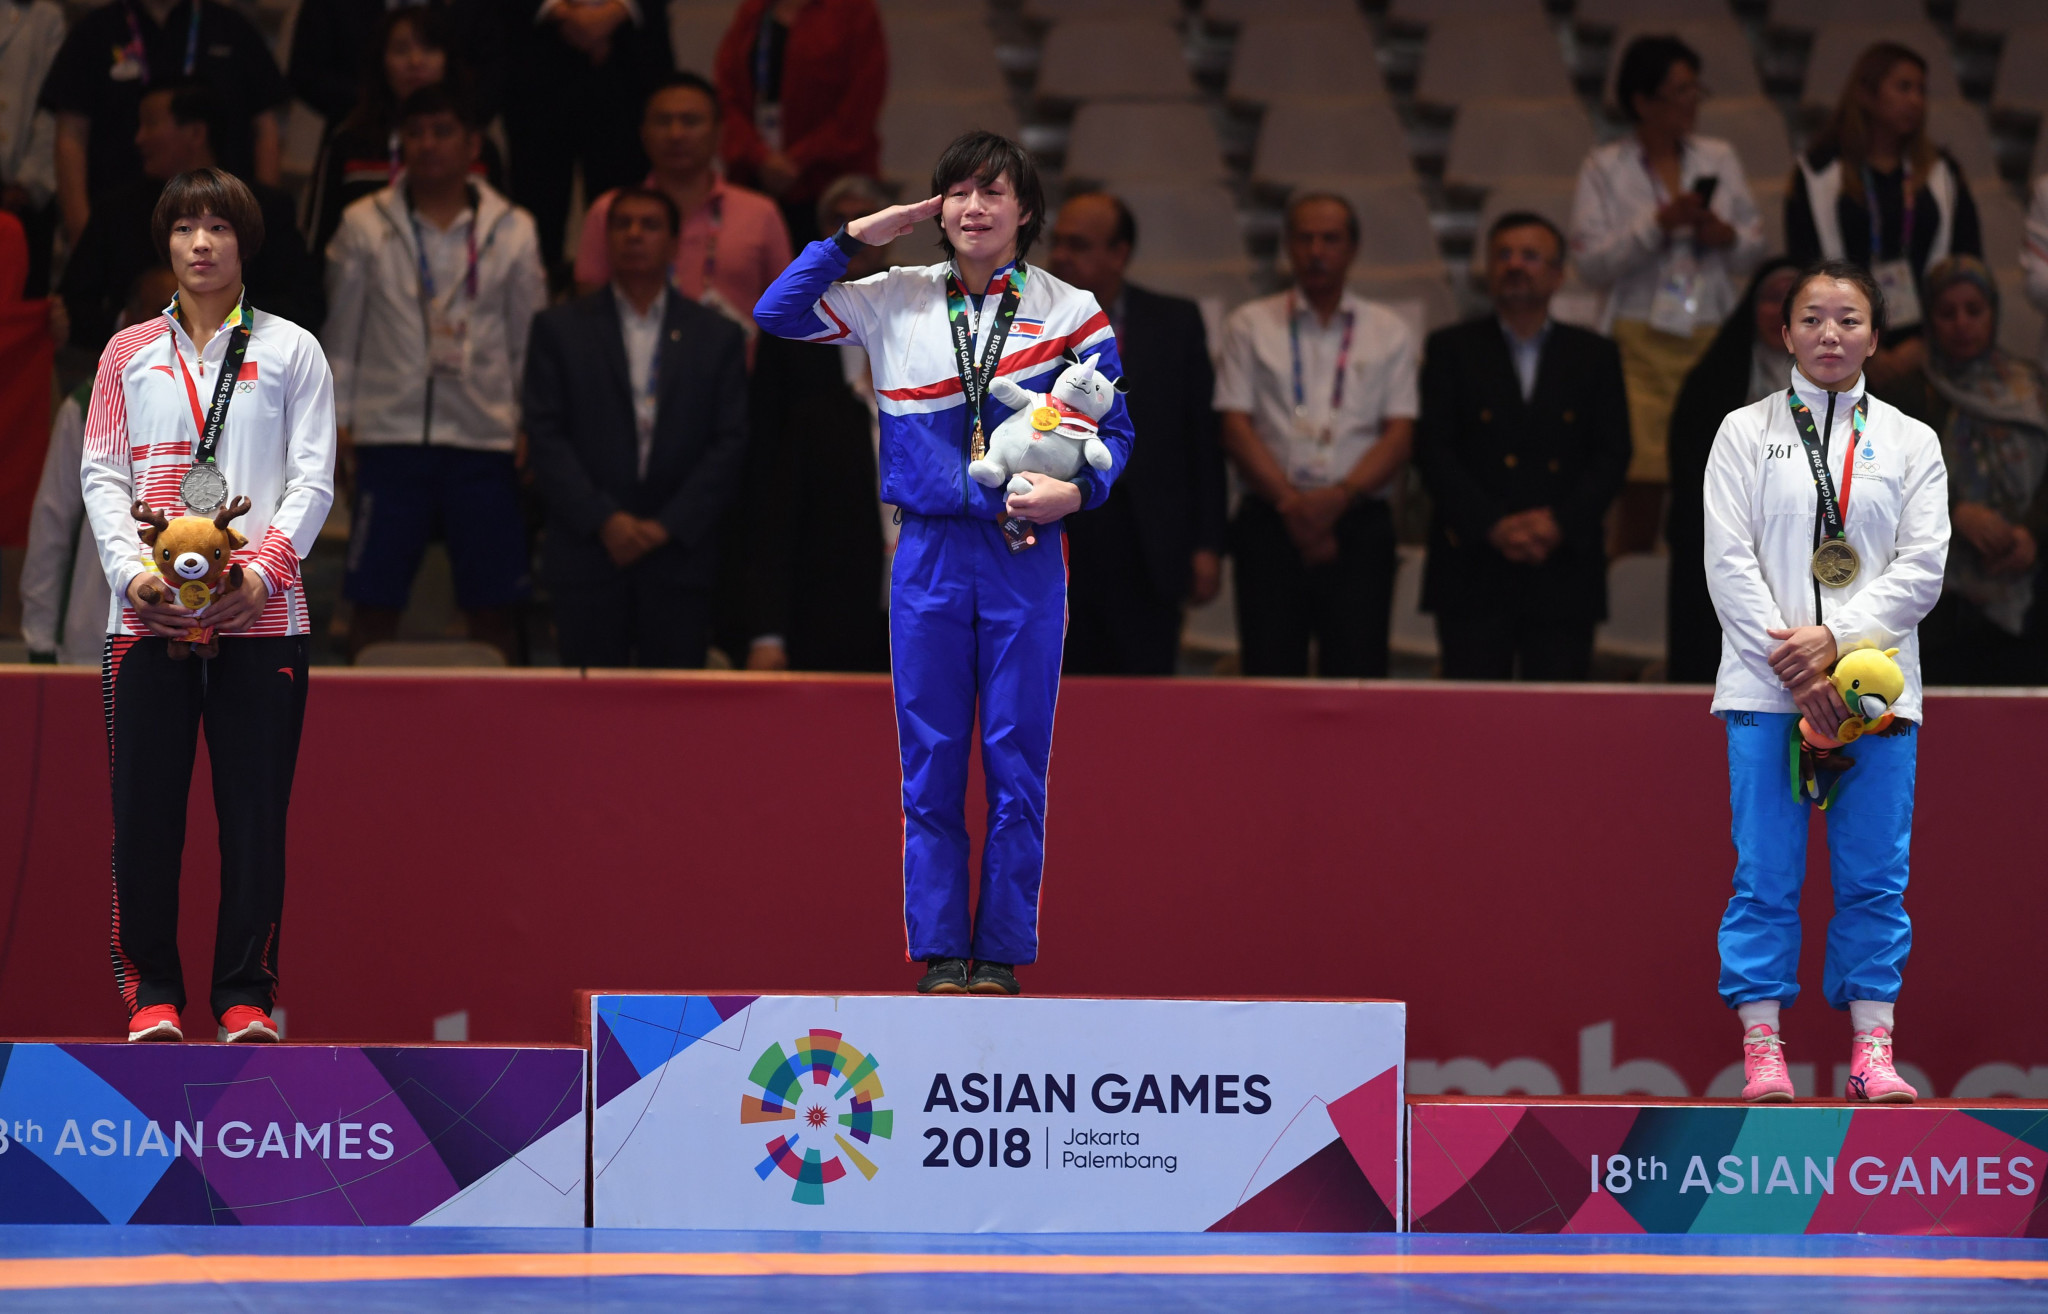 Fellow countrywoman Jong Myong Suk tasted victory in the 57kg event ©Getty Images